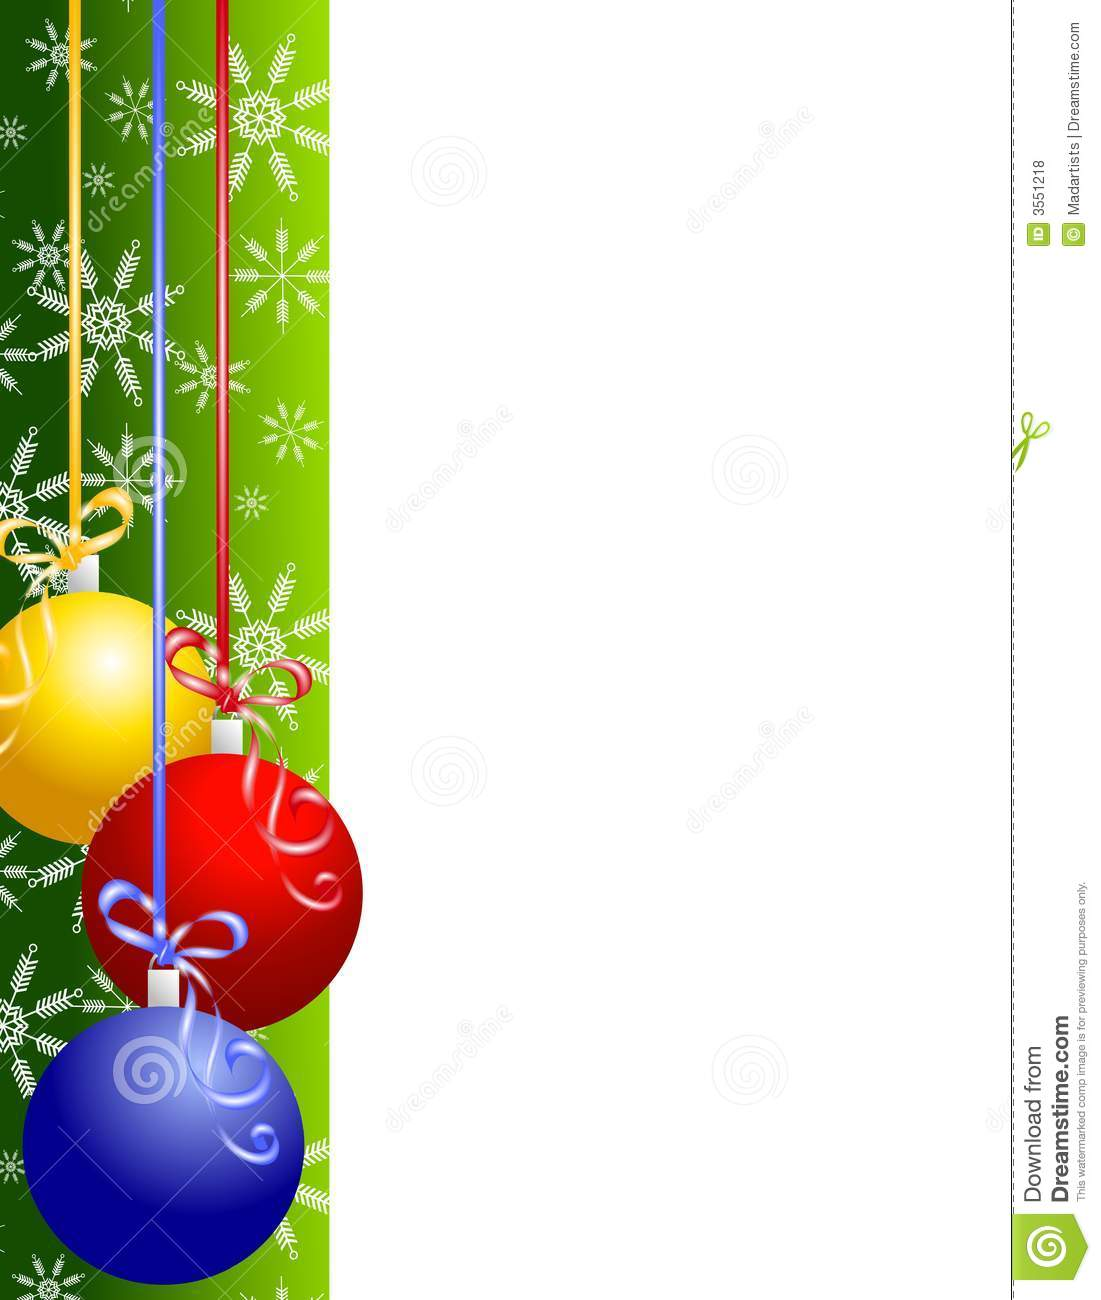 Christmas Clipart Borders Christmas Ornaments Border 3551218 Jpg